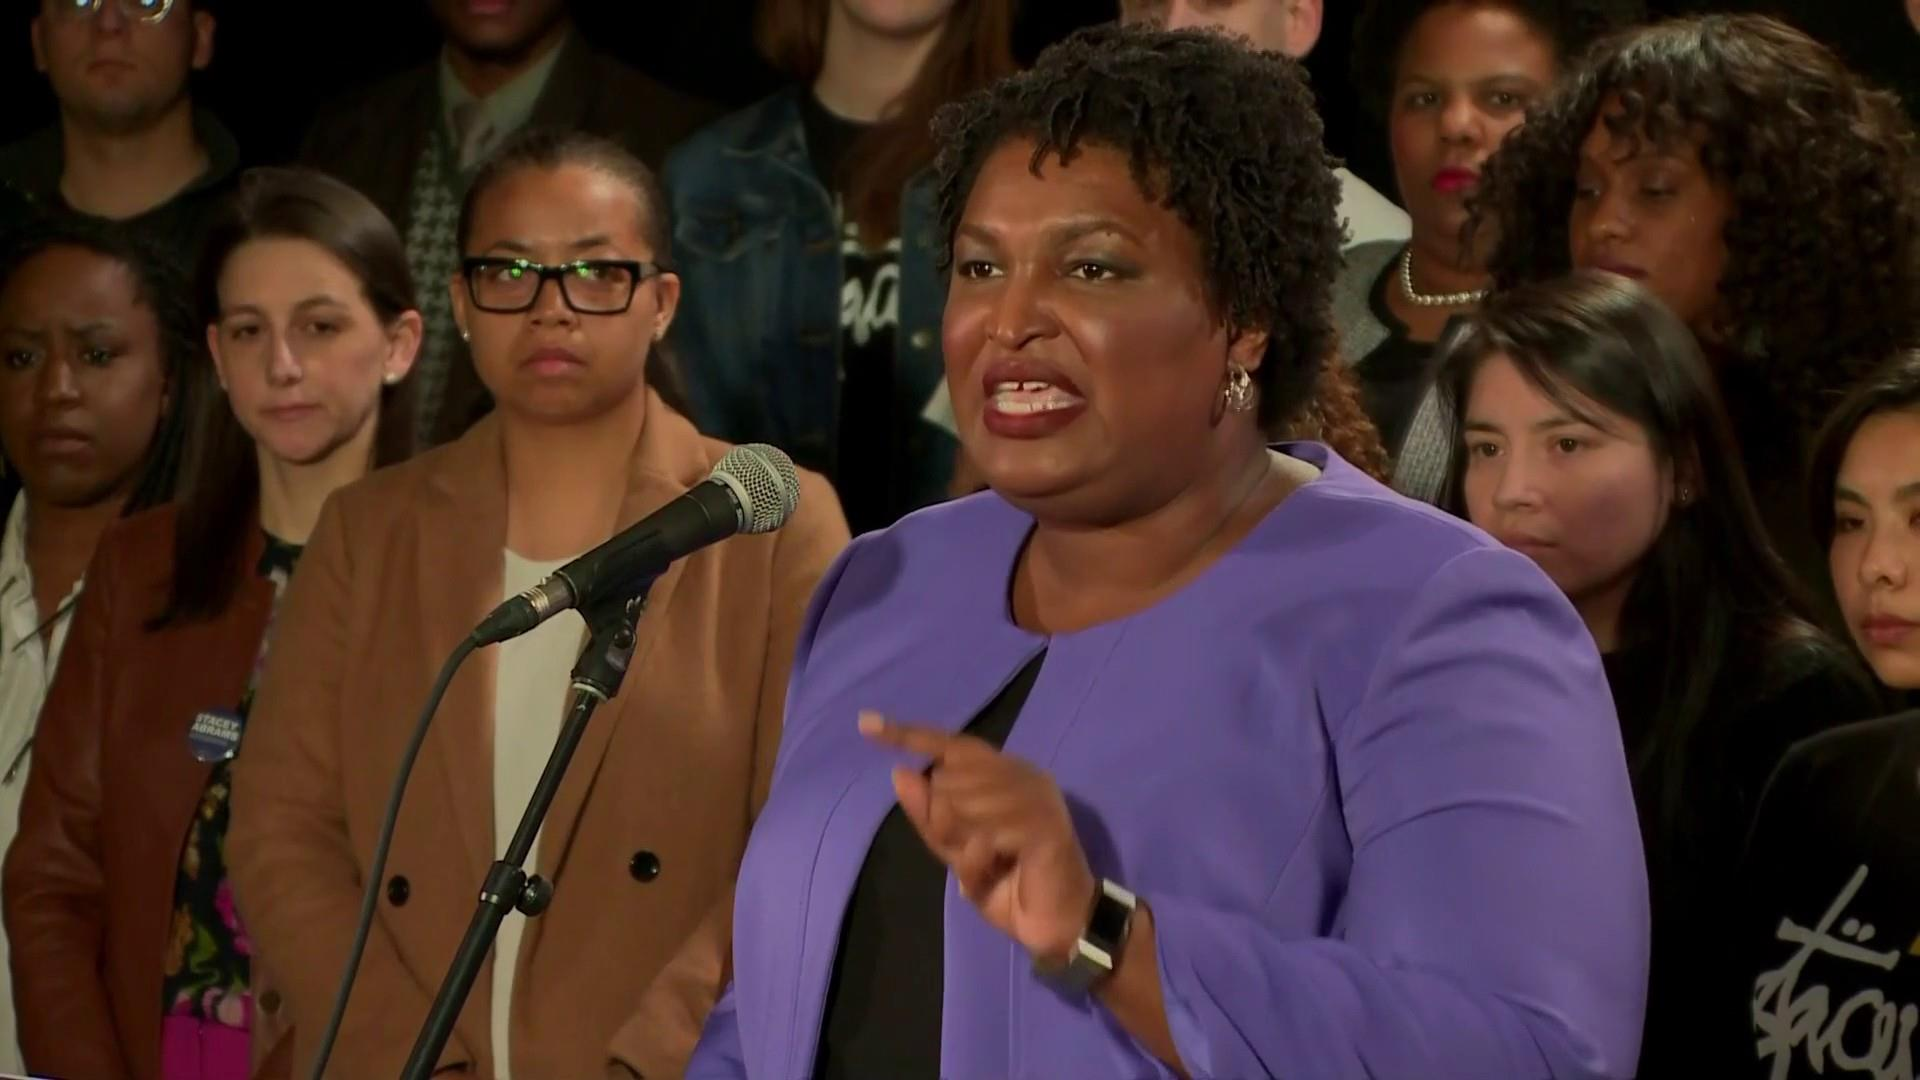 Democrat Stacey Abrams ends bid for Georgia governor, accuses winner of voter suppression